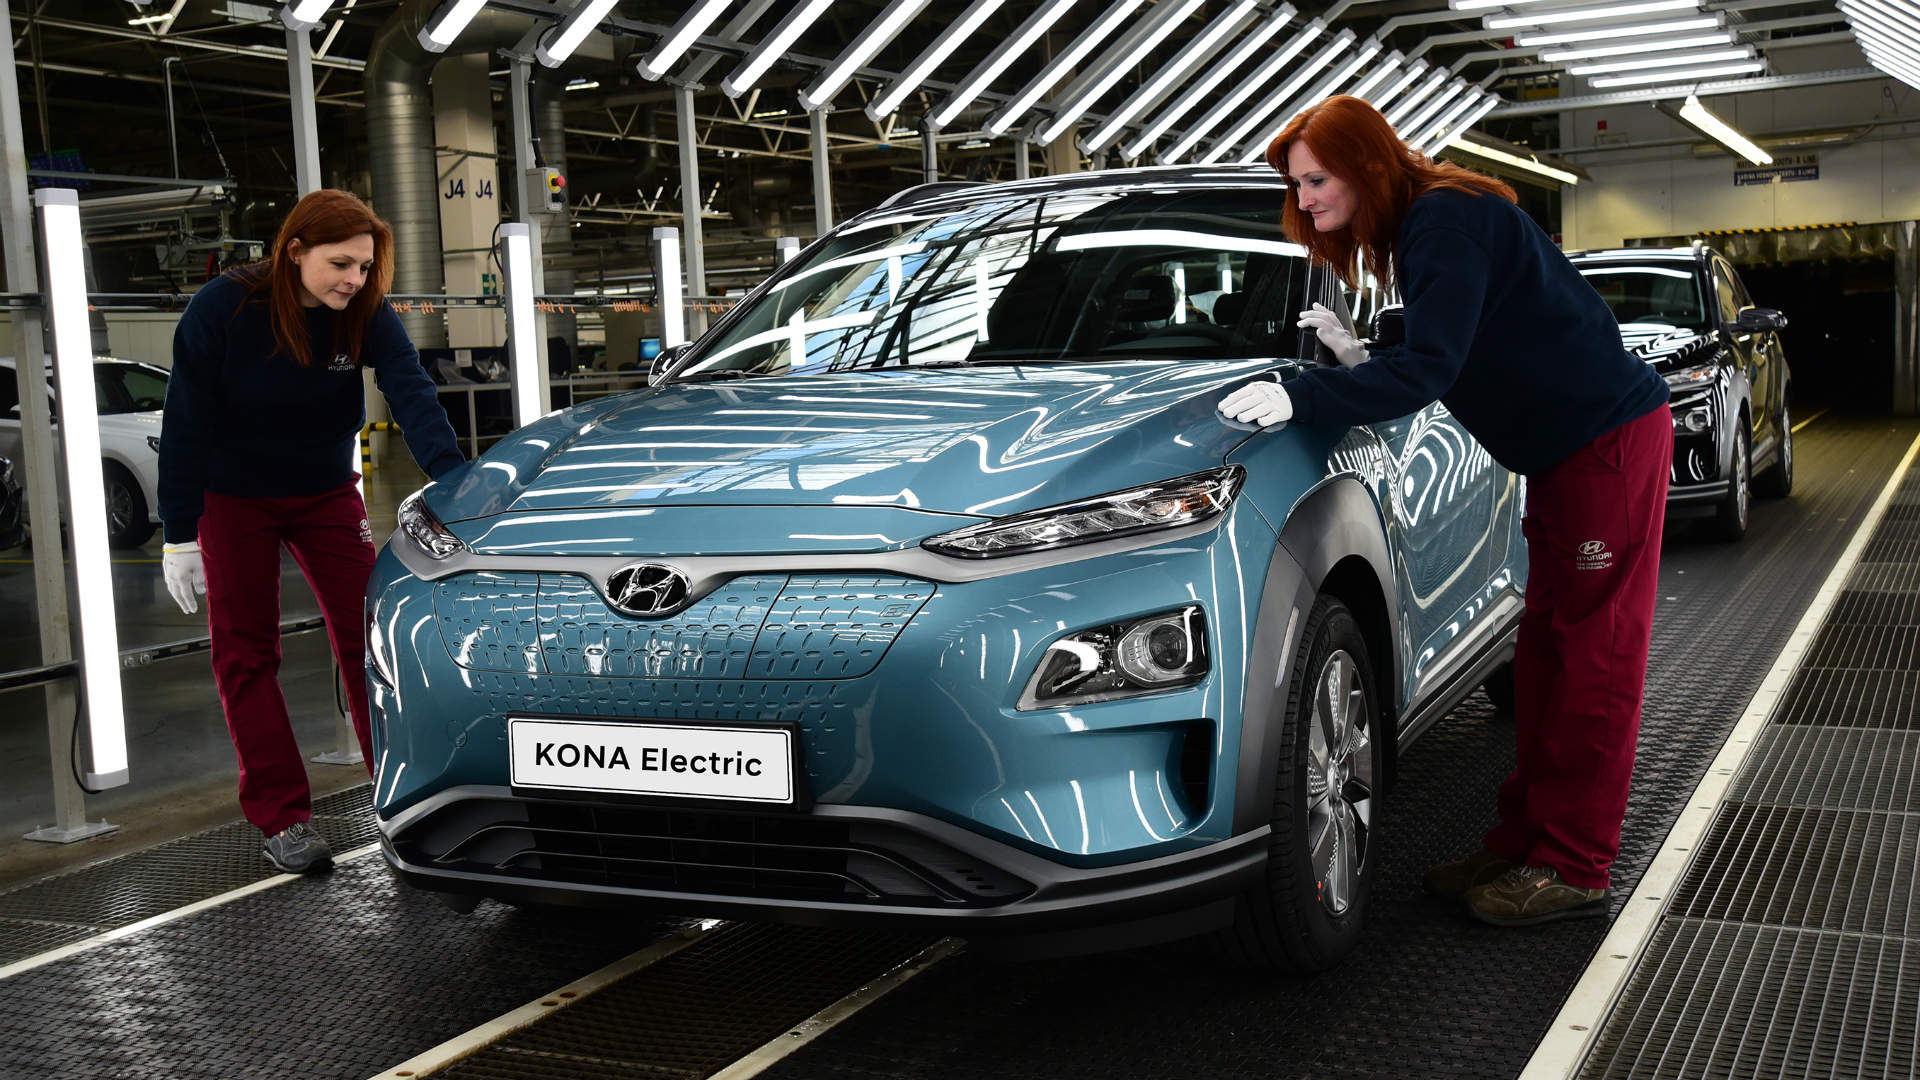 Hyundai Kona Electric built in Europe